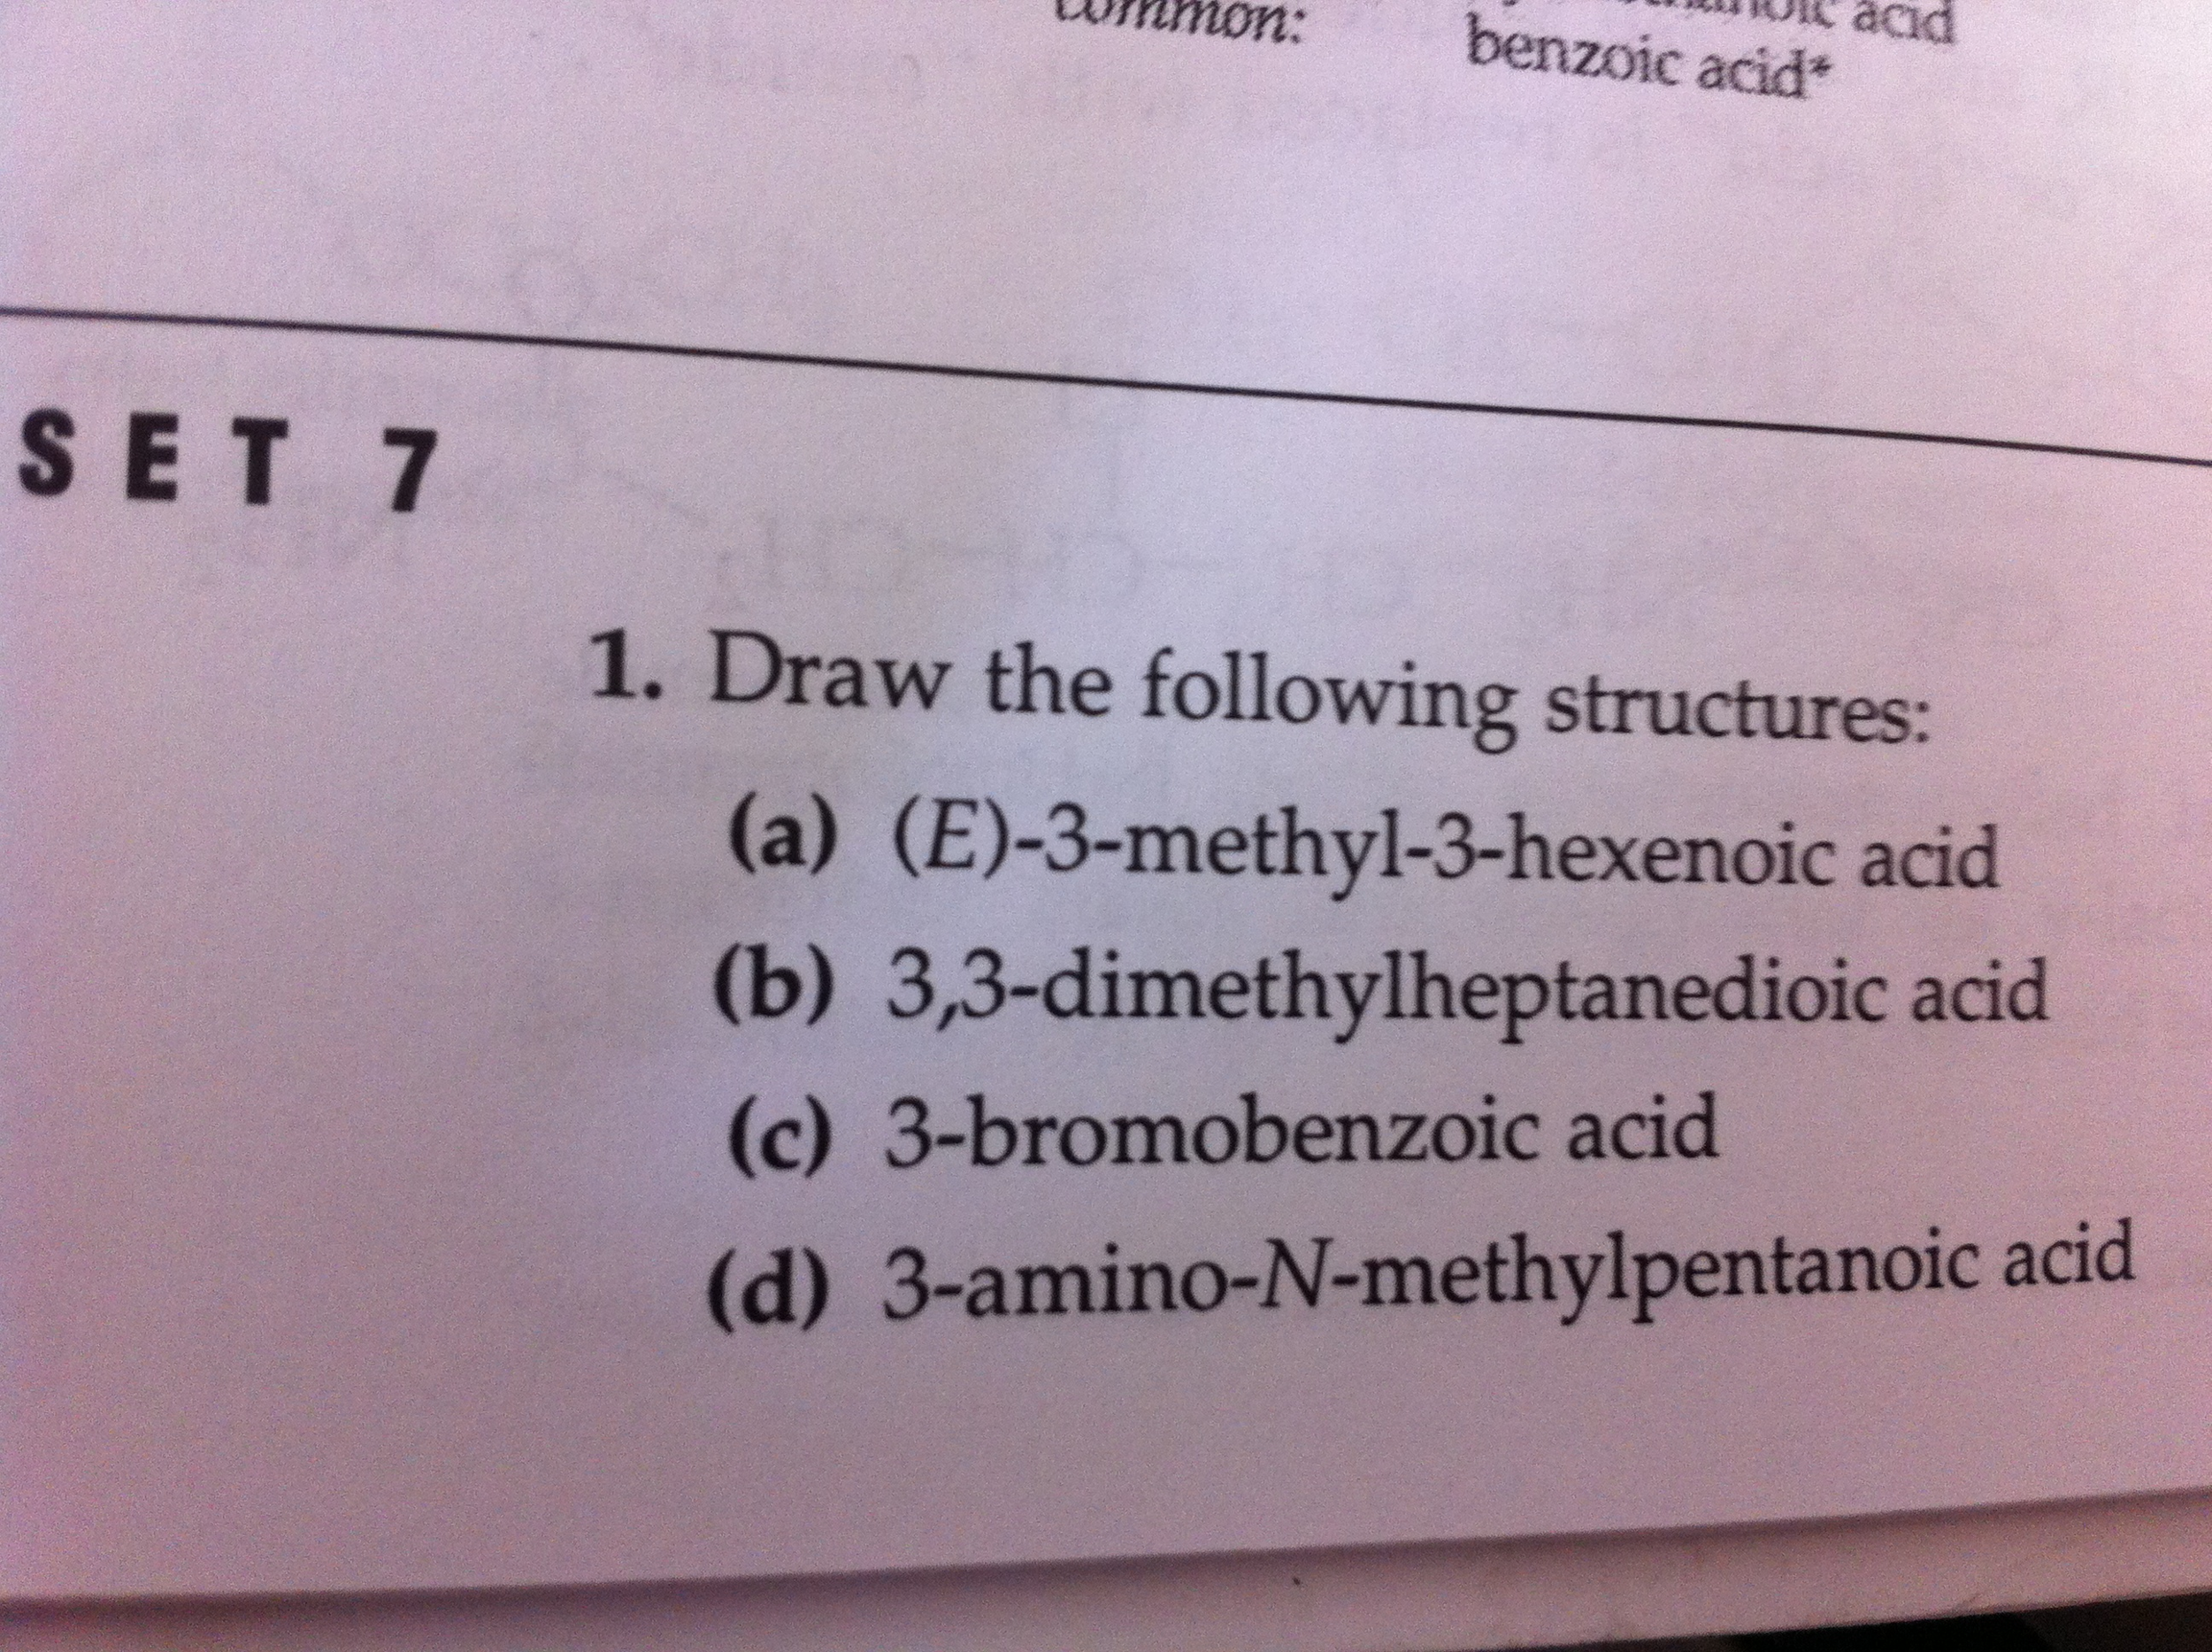 Draw the following structures: (E)-3-methyl-3-hex